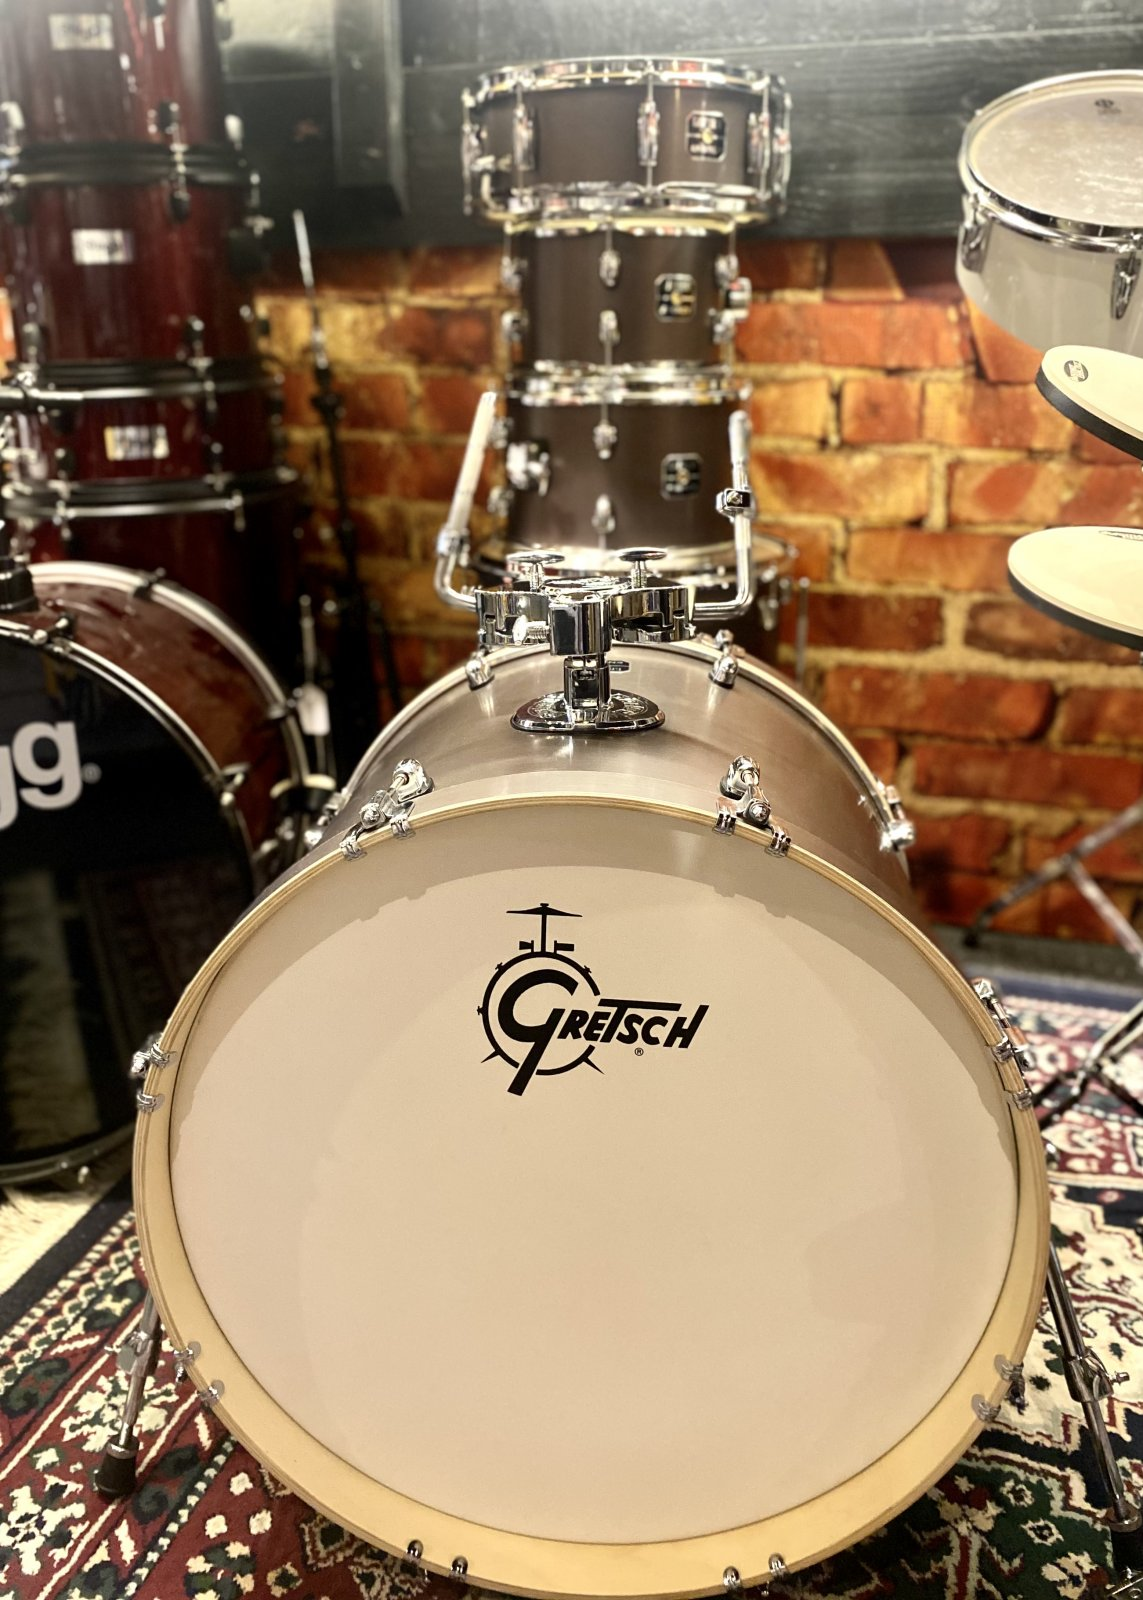 GRETSCH ENERGY 5 PIECE KIT WITH KICK PEDAL AND SNARE STAND + EXTRAS